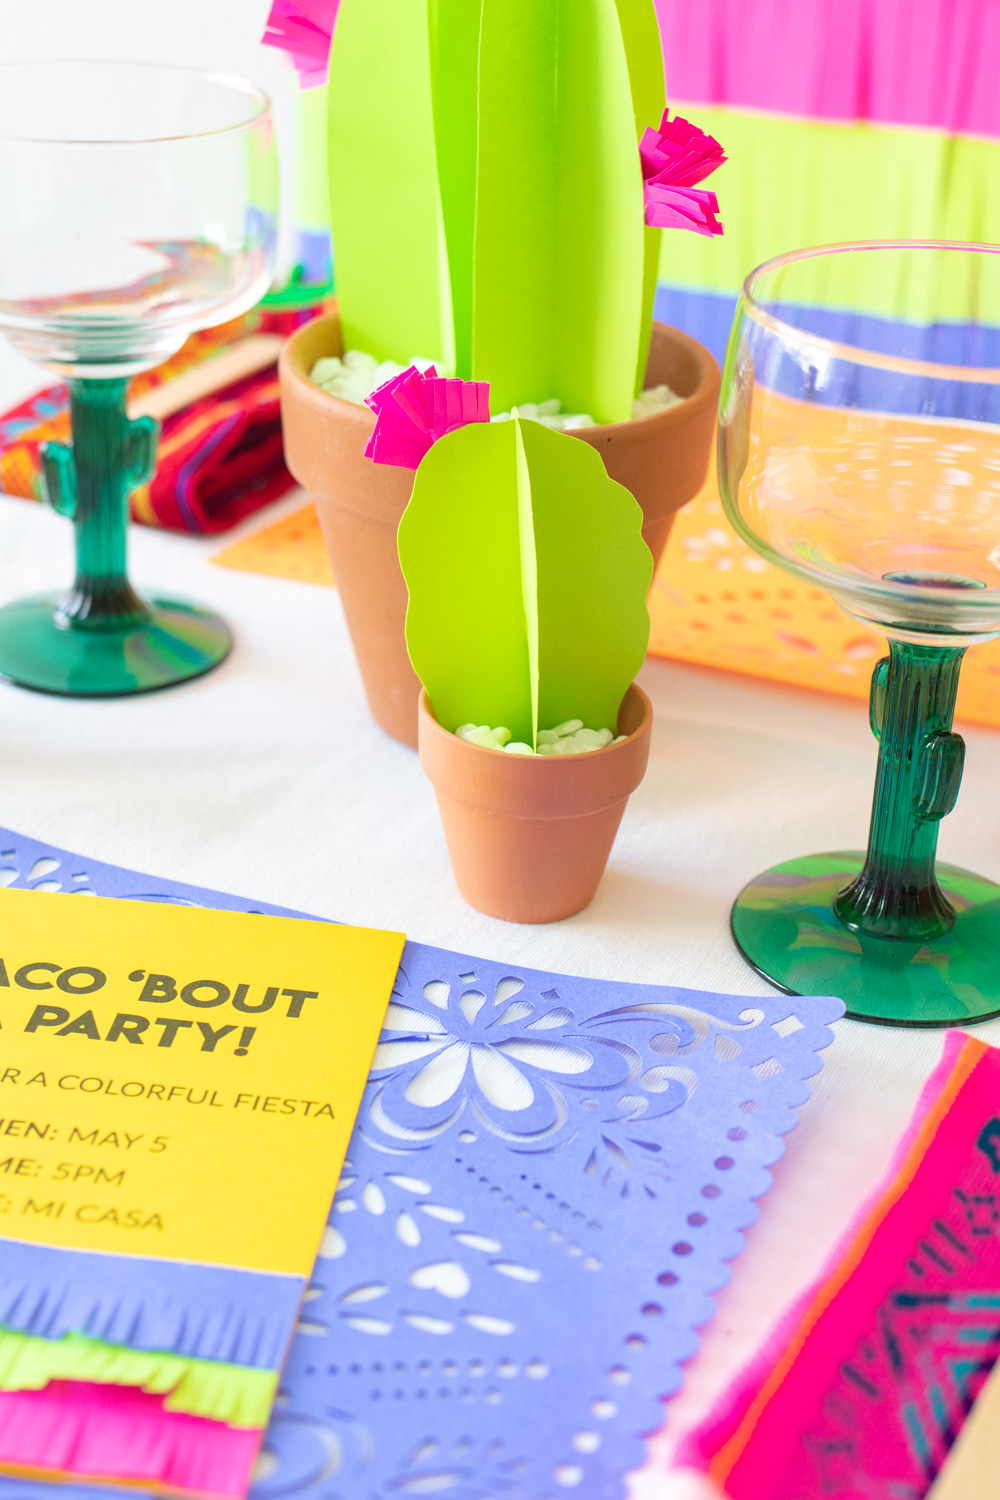 closeup of paper cactus for fiesta decor on table